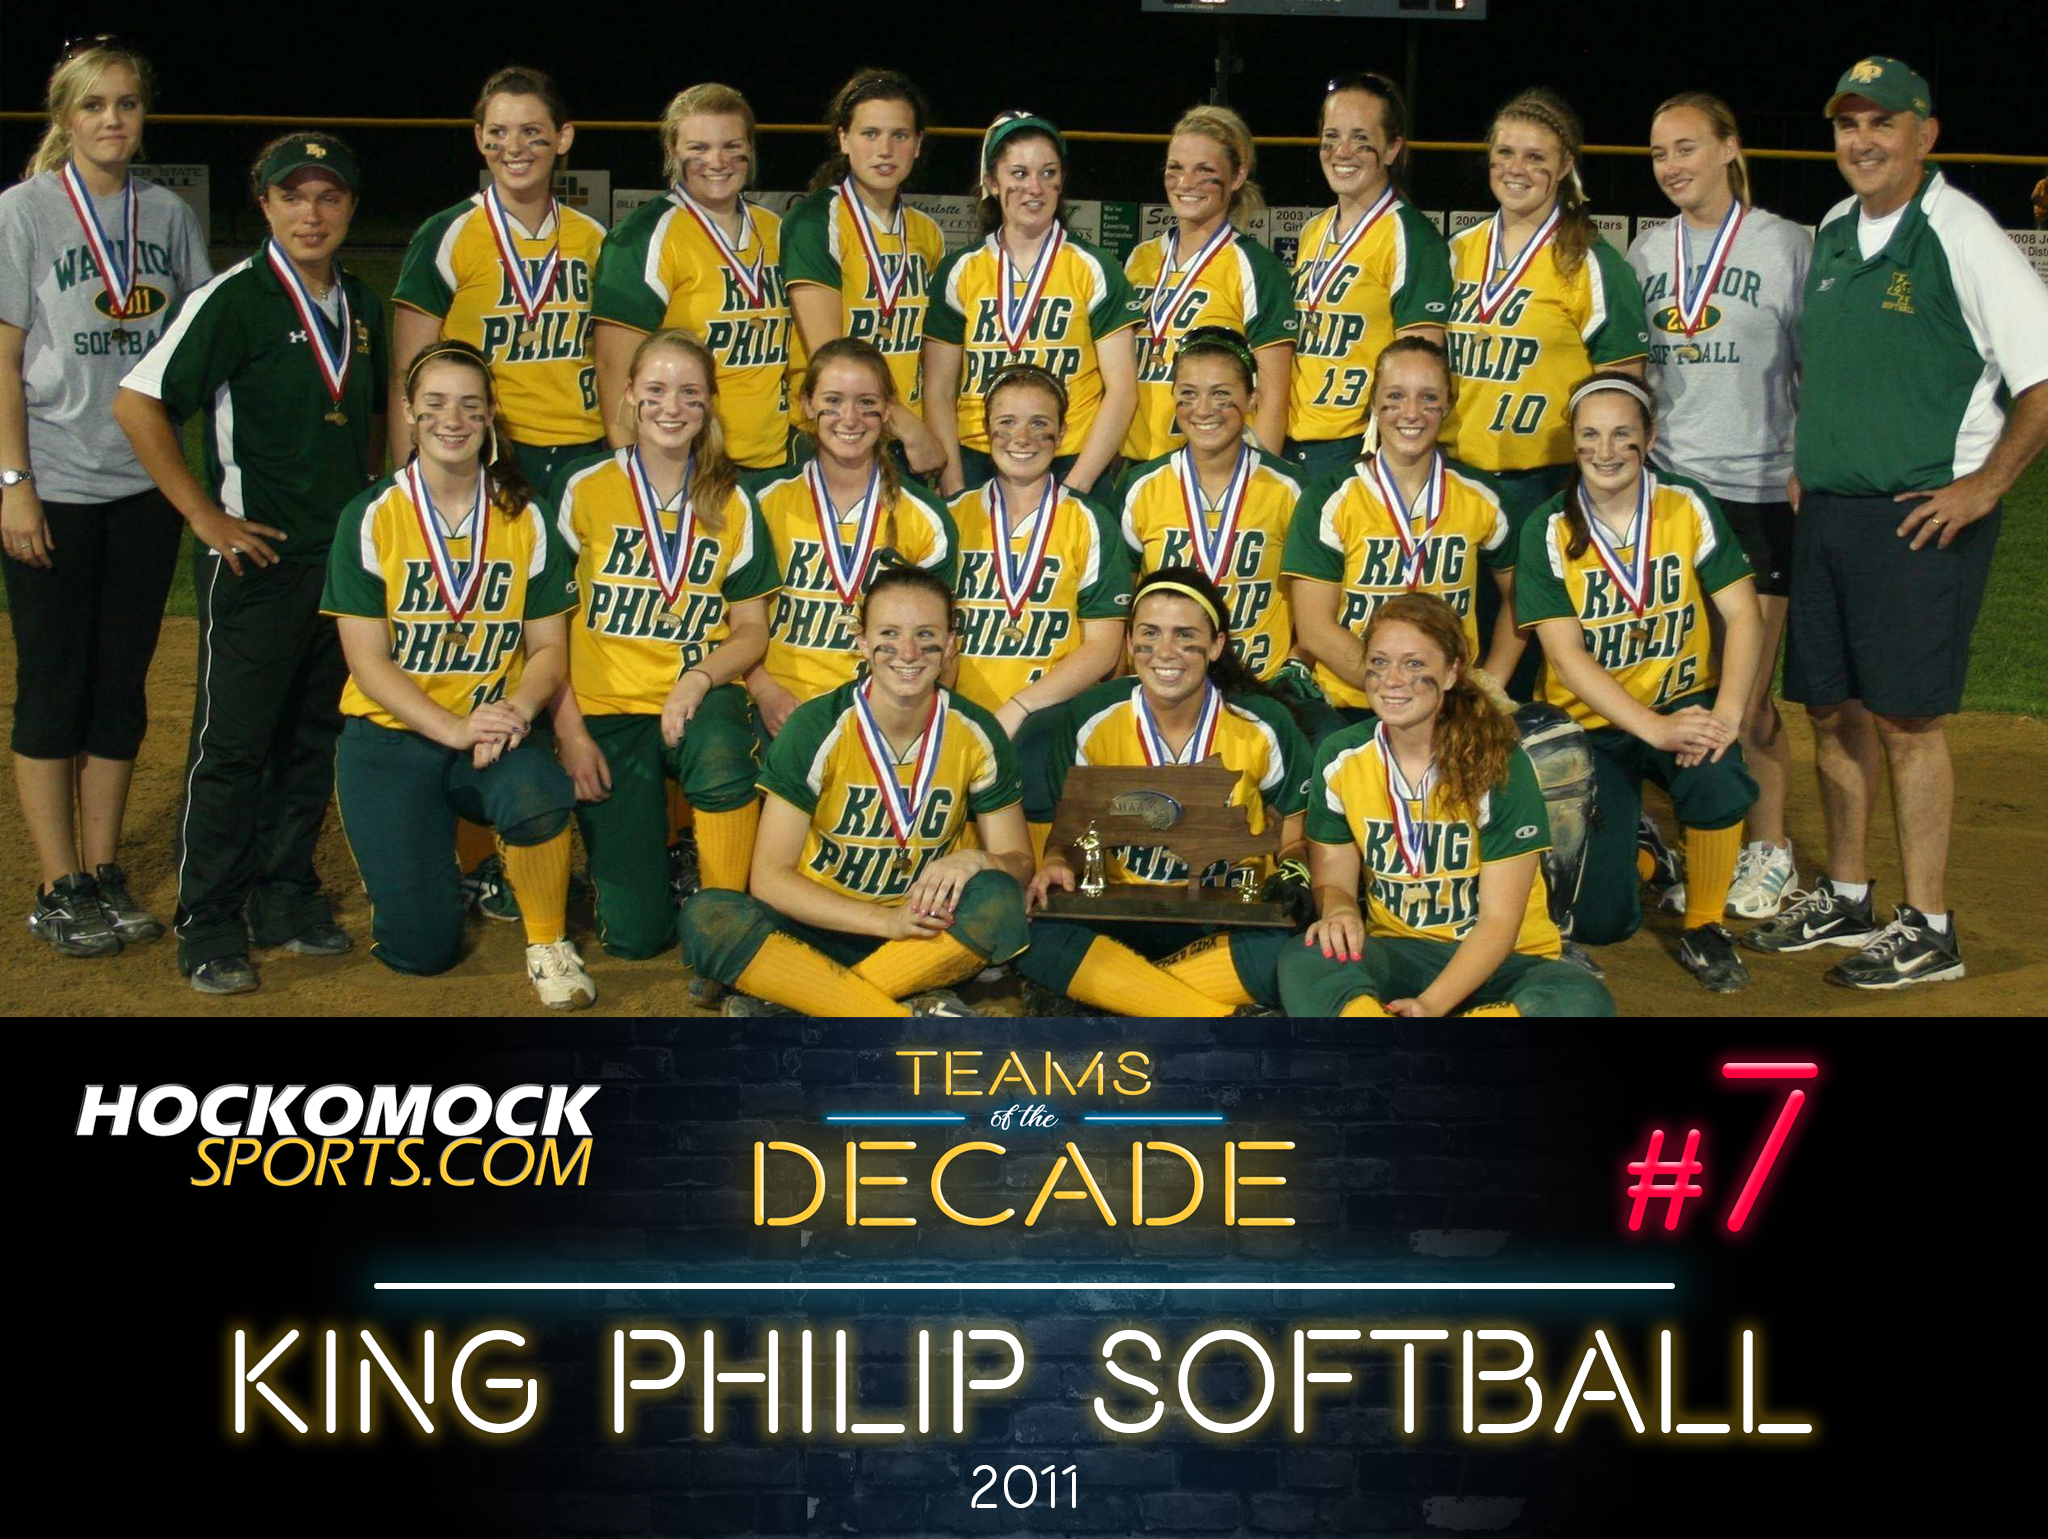 King Philip softball